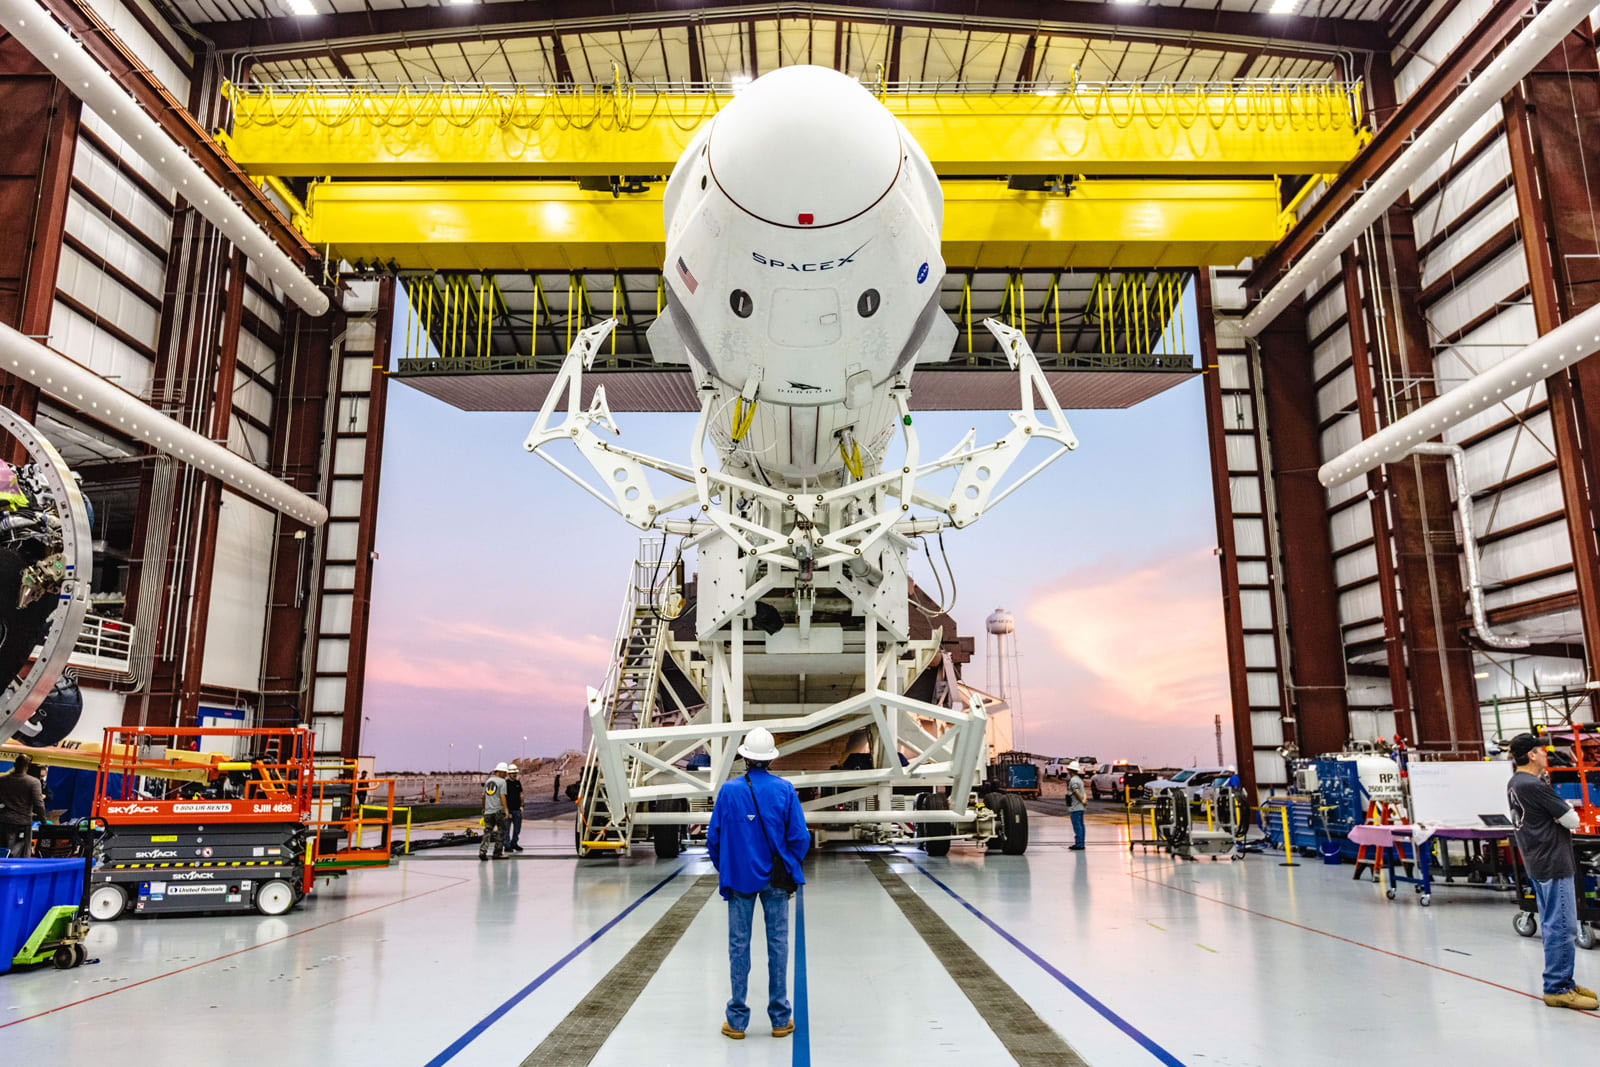 SpaceX plans to test Crew Dragon's launch escape system on January 18th